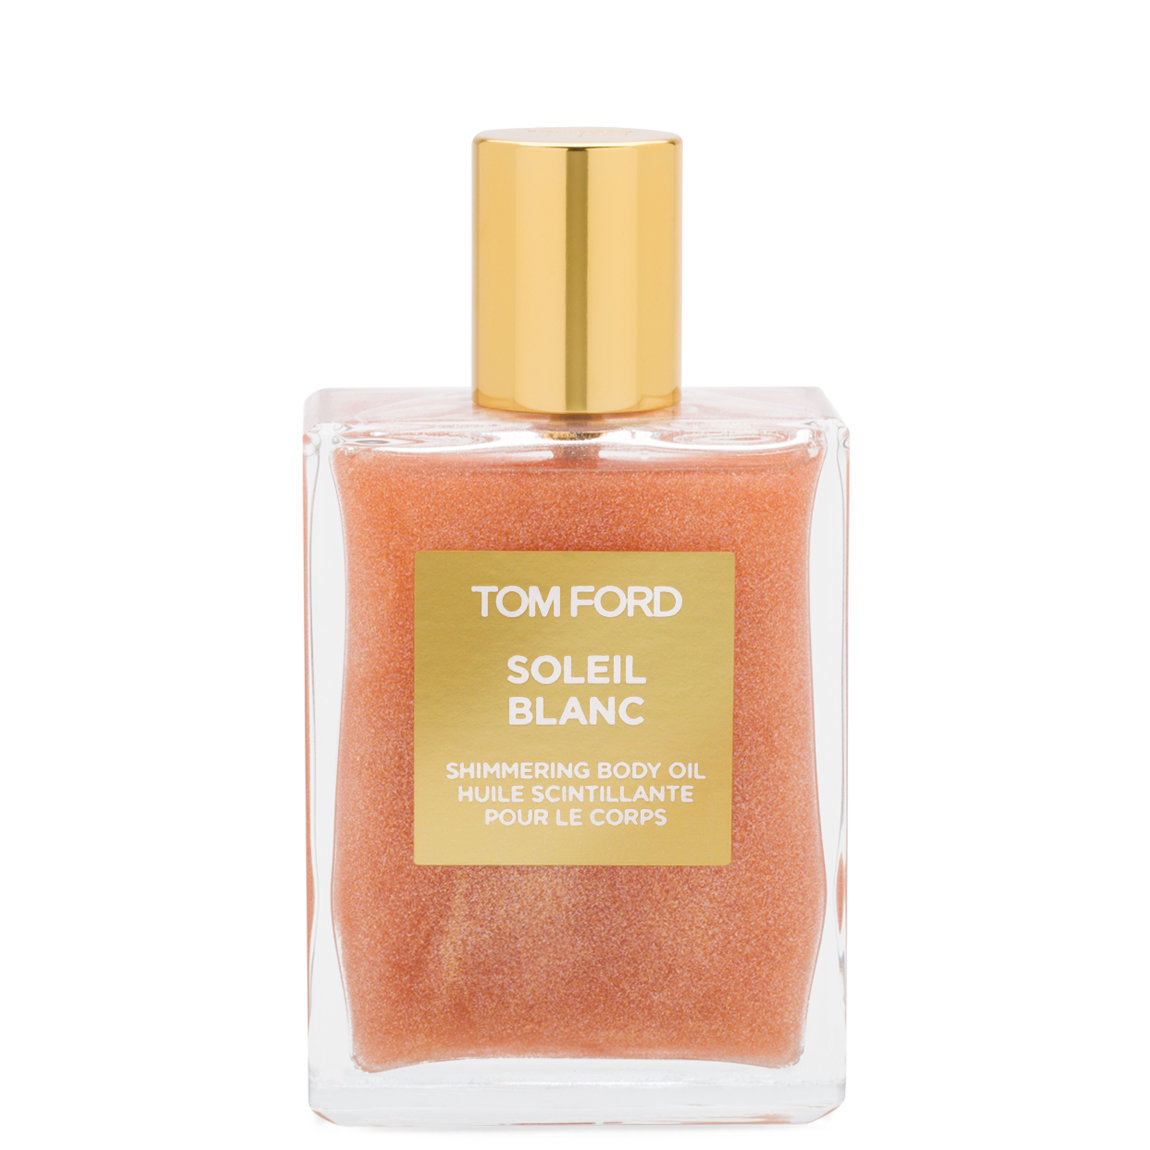 9bf0c9d3d07ff TOM FORD Soleil Blanc Shimmering Body Oil Rose Gold product smear.